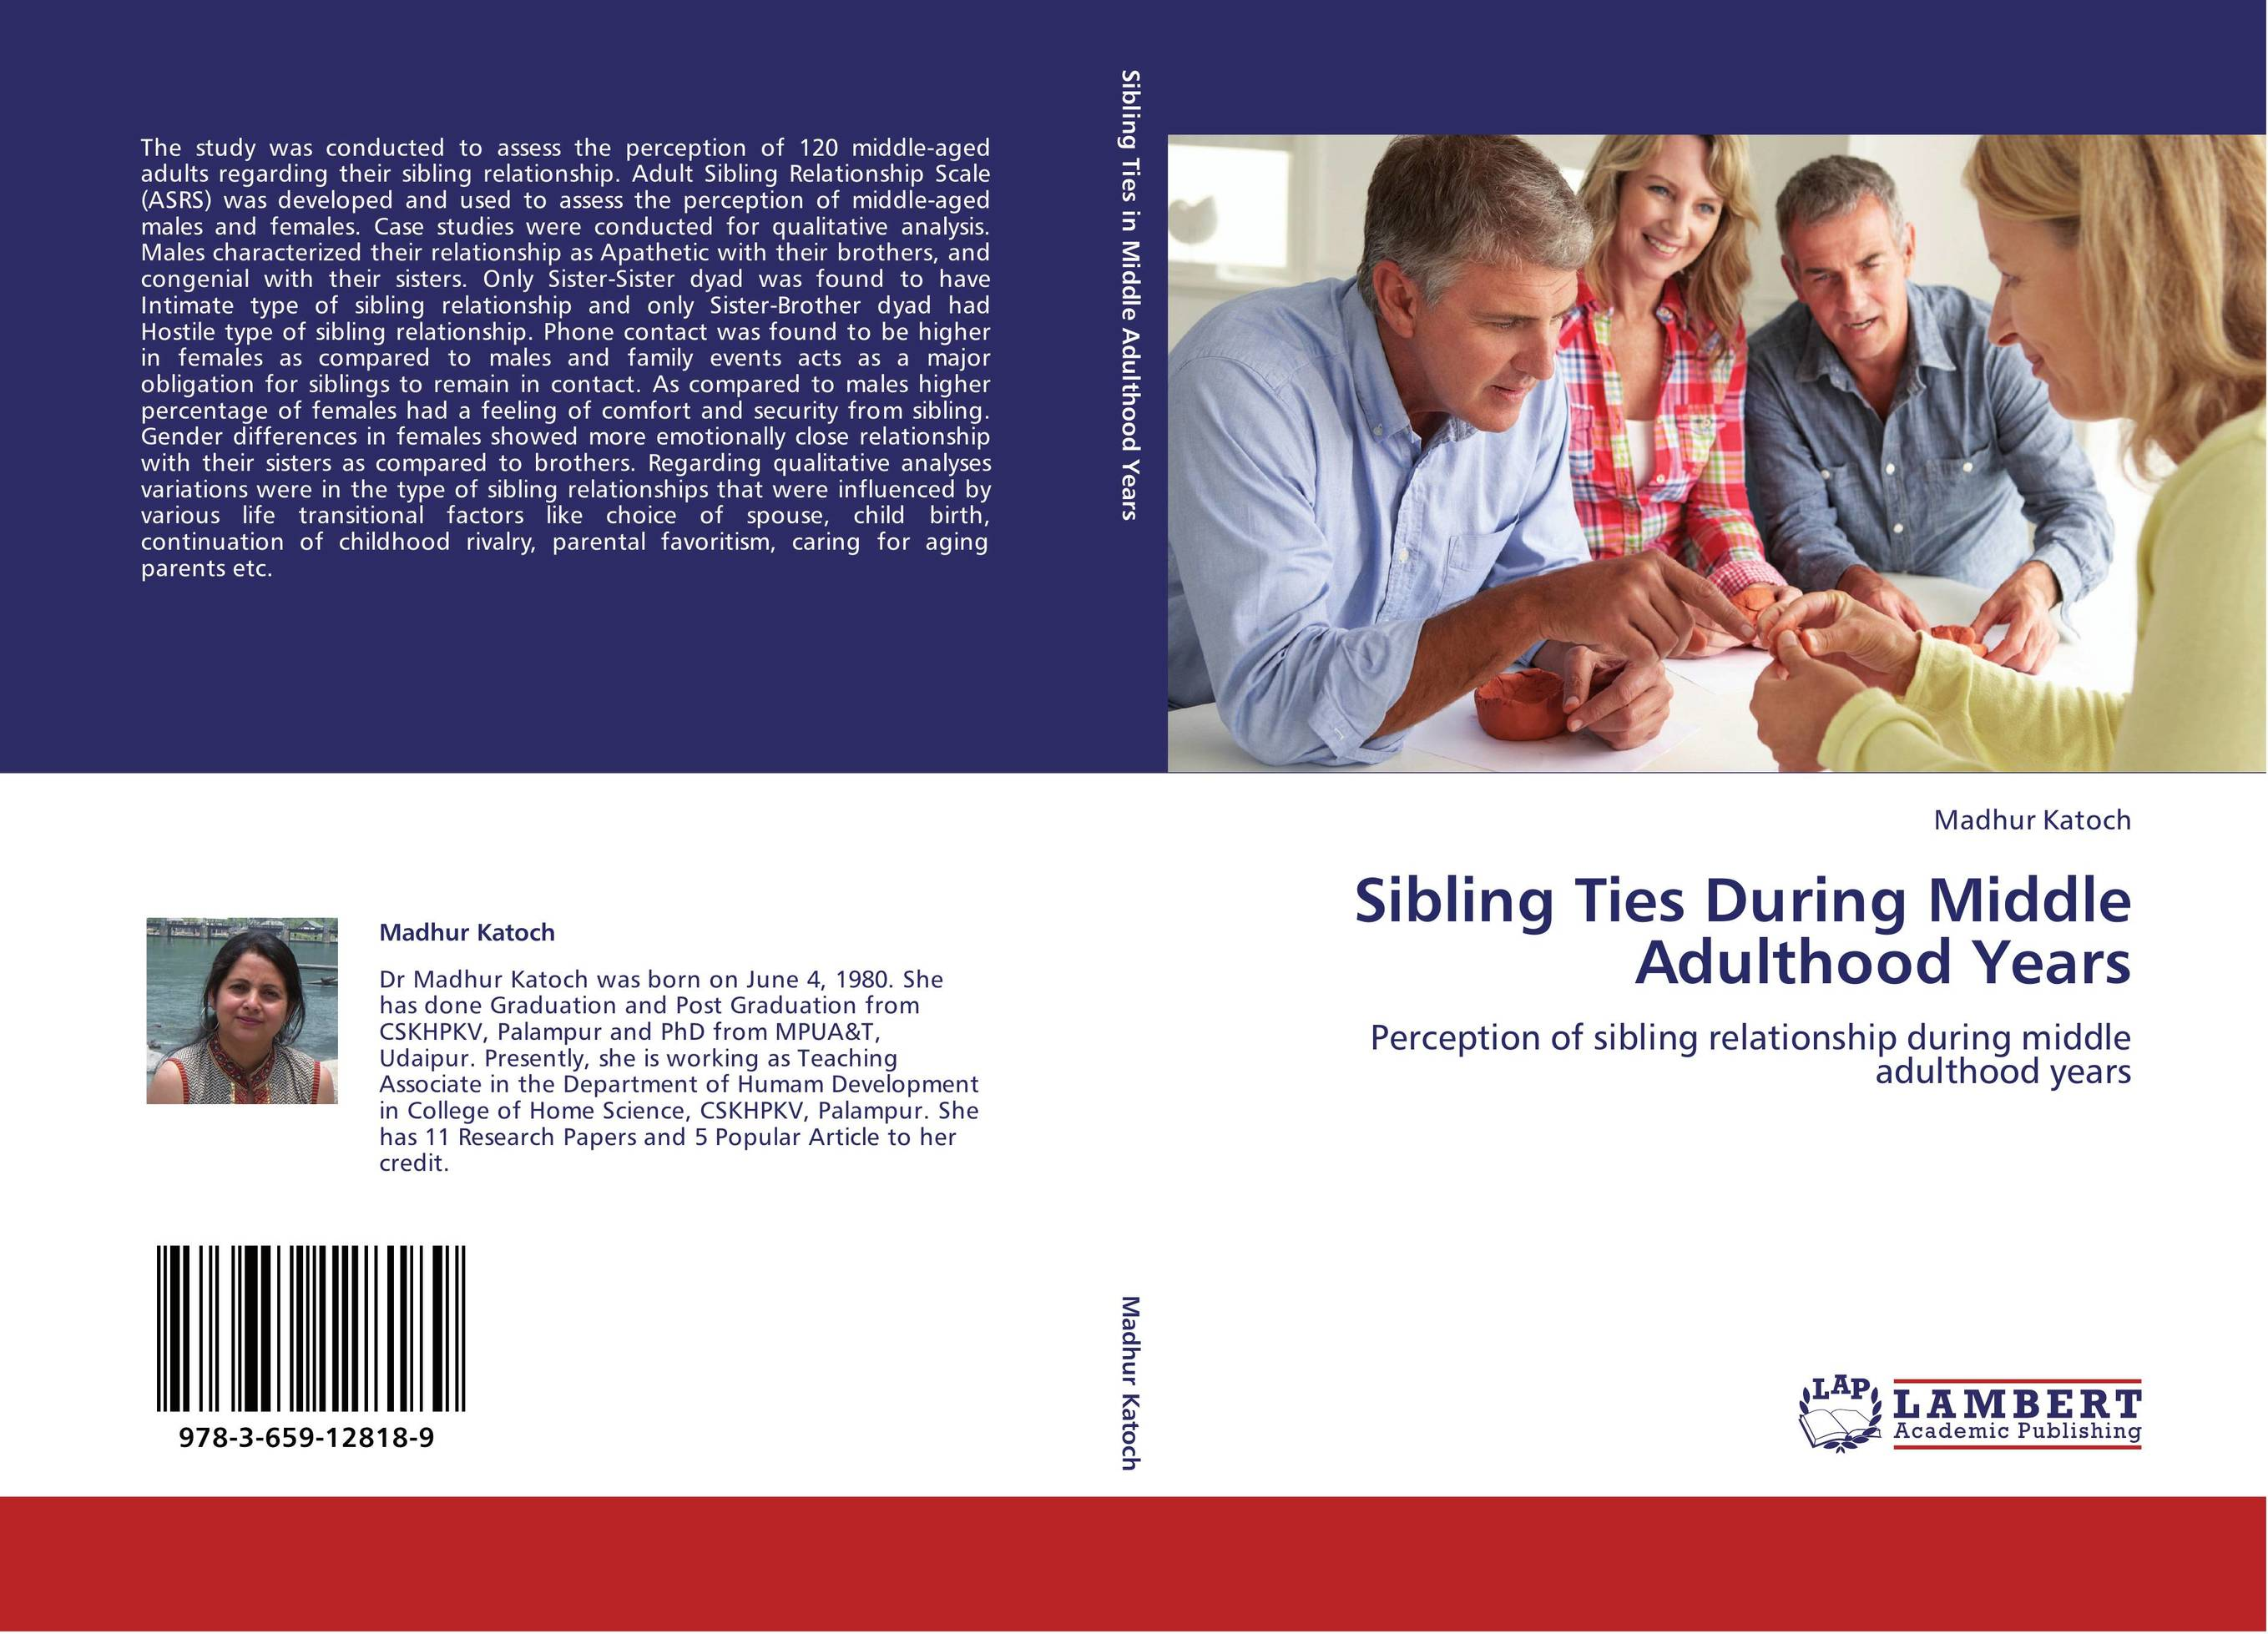 effect of early relationship during studying Three ideas rooted in the family literature of several disciplines motivate this project: 1) relationships early in life are socializing agents for later life social relationships 2) adolescent relationships from various domains are important for later social relationships and 3) content and quality of relationships, rather than mere.